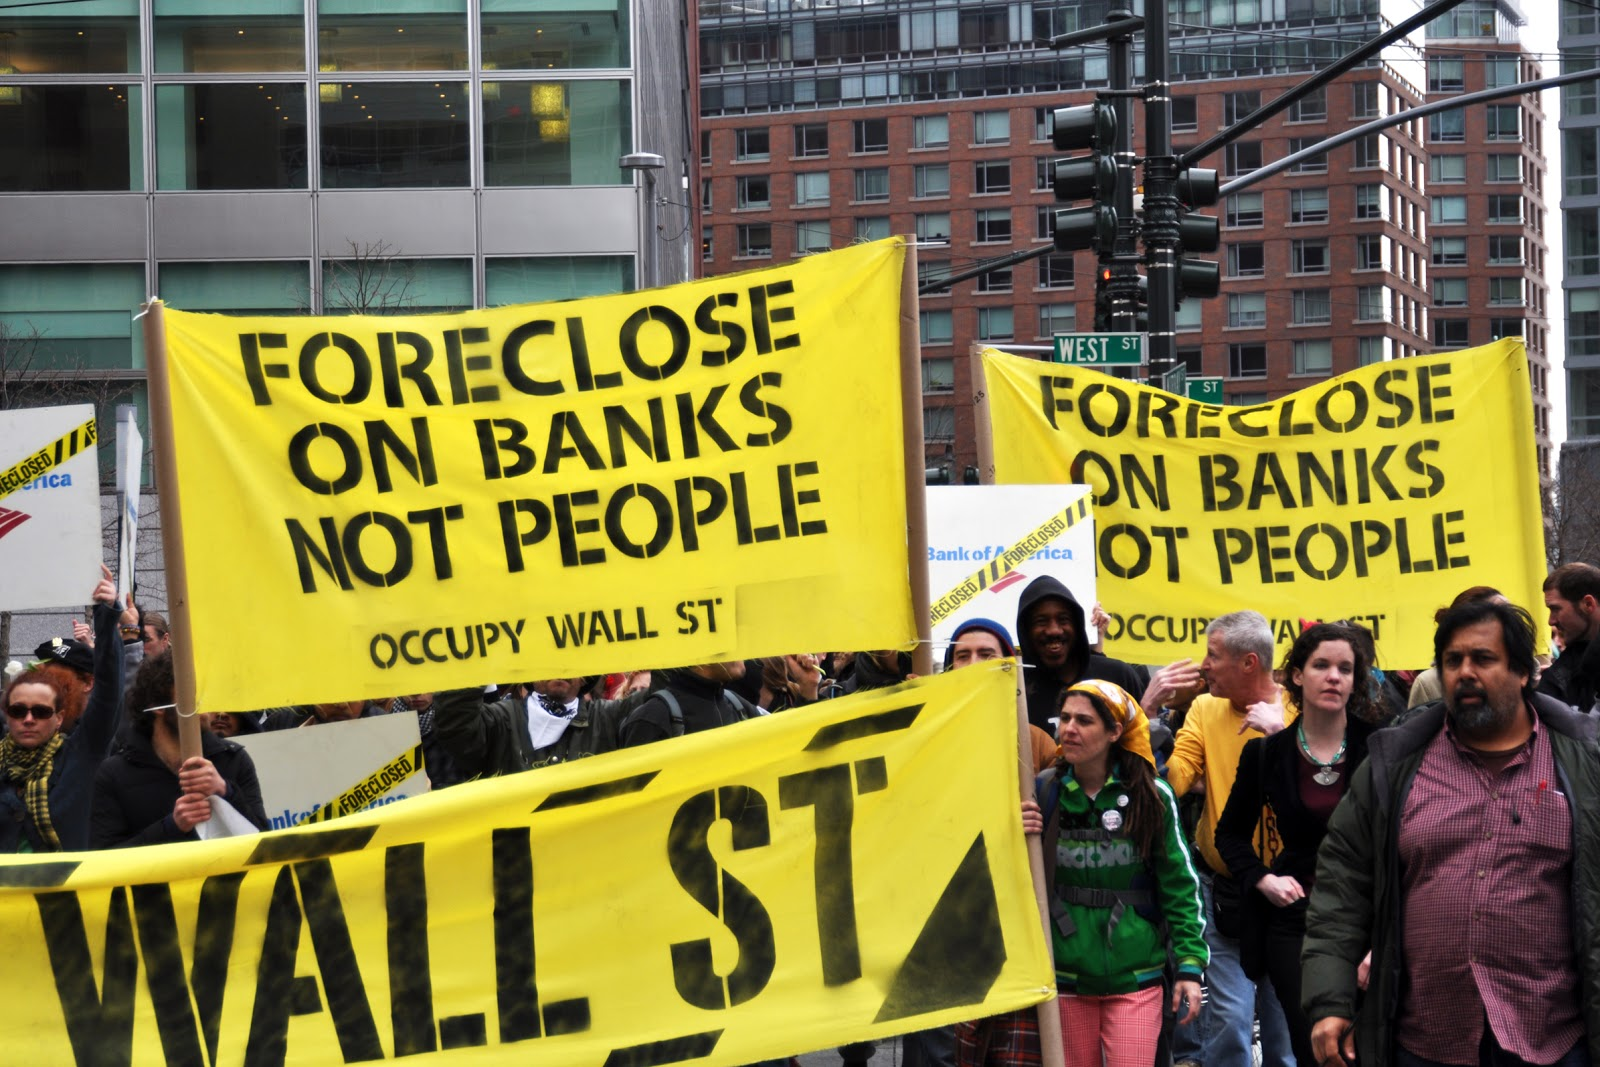 Foreclose on Banks